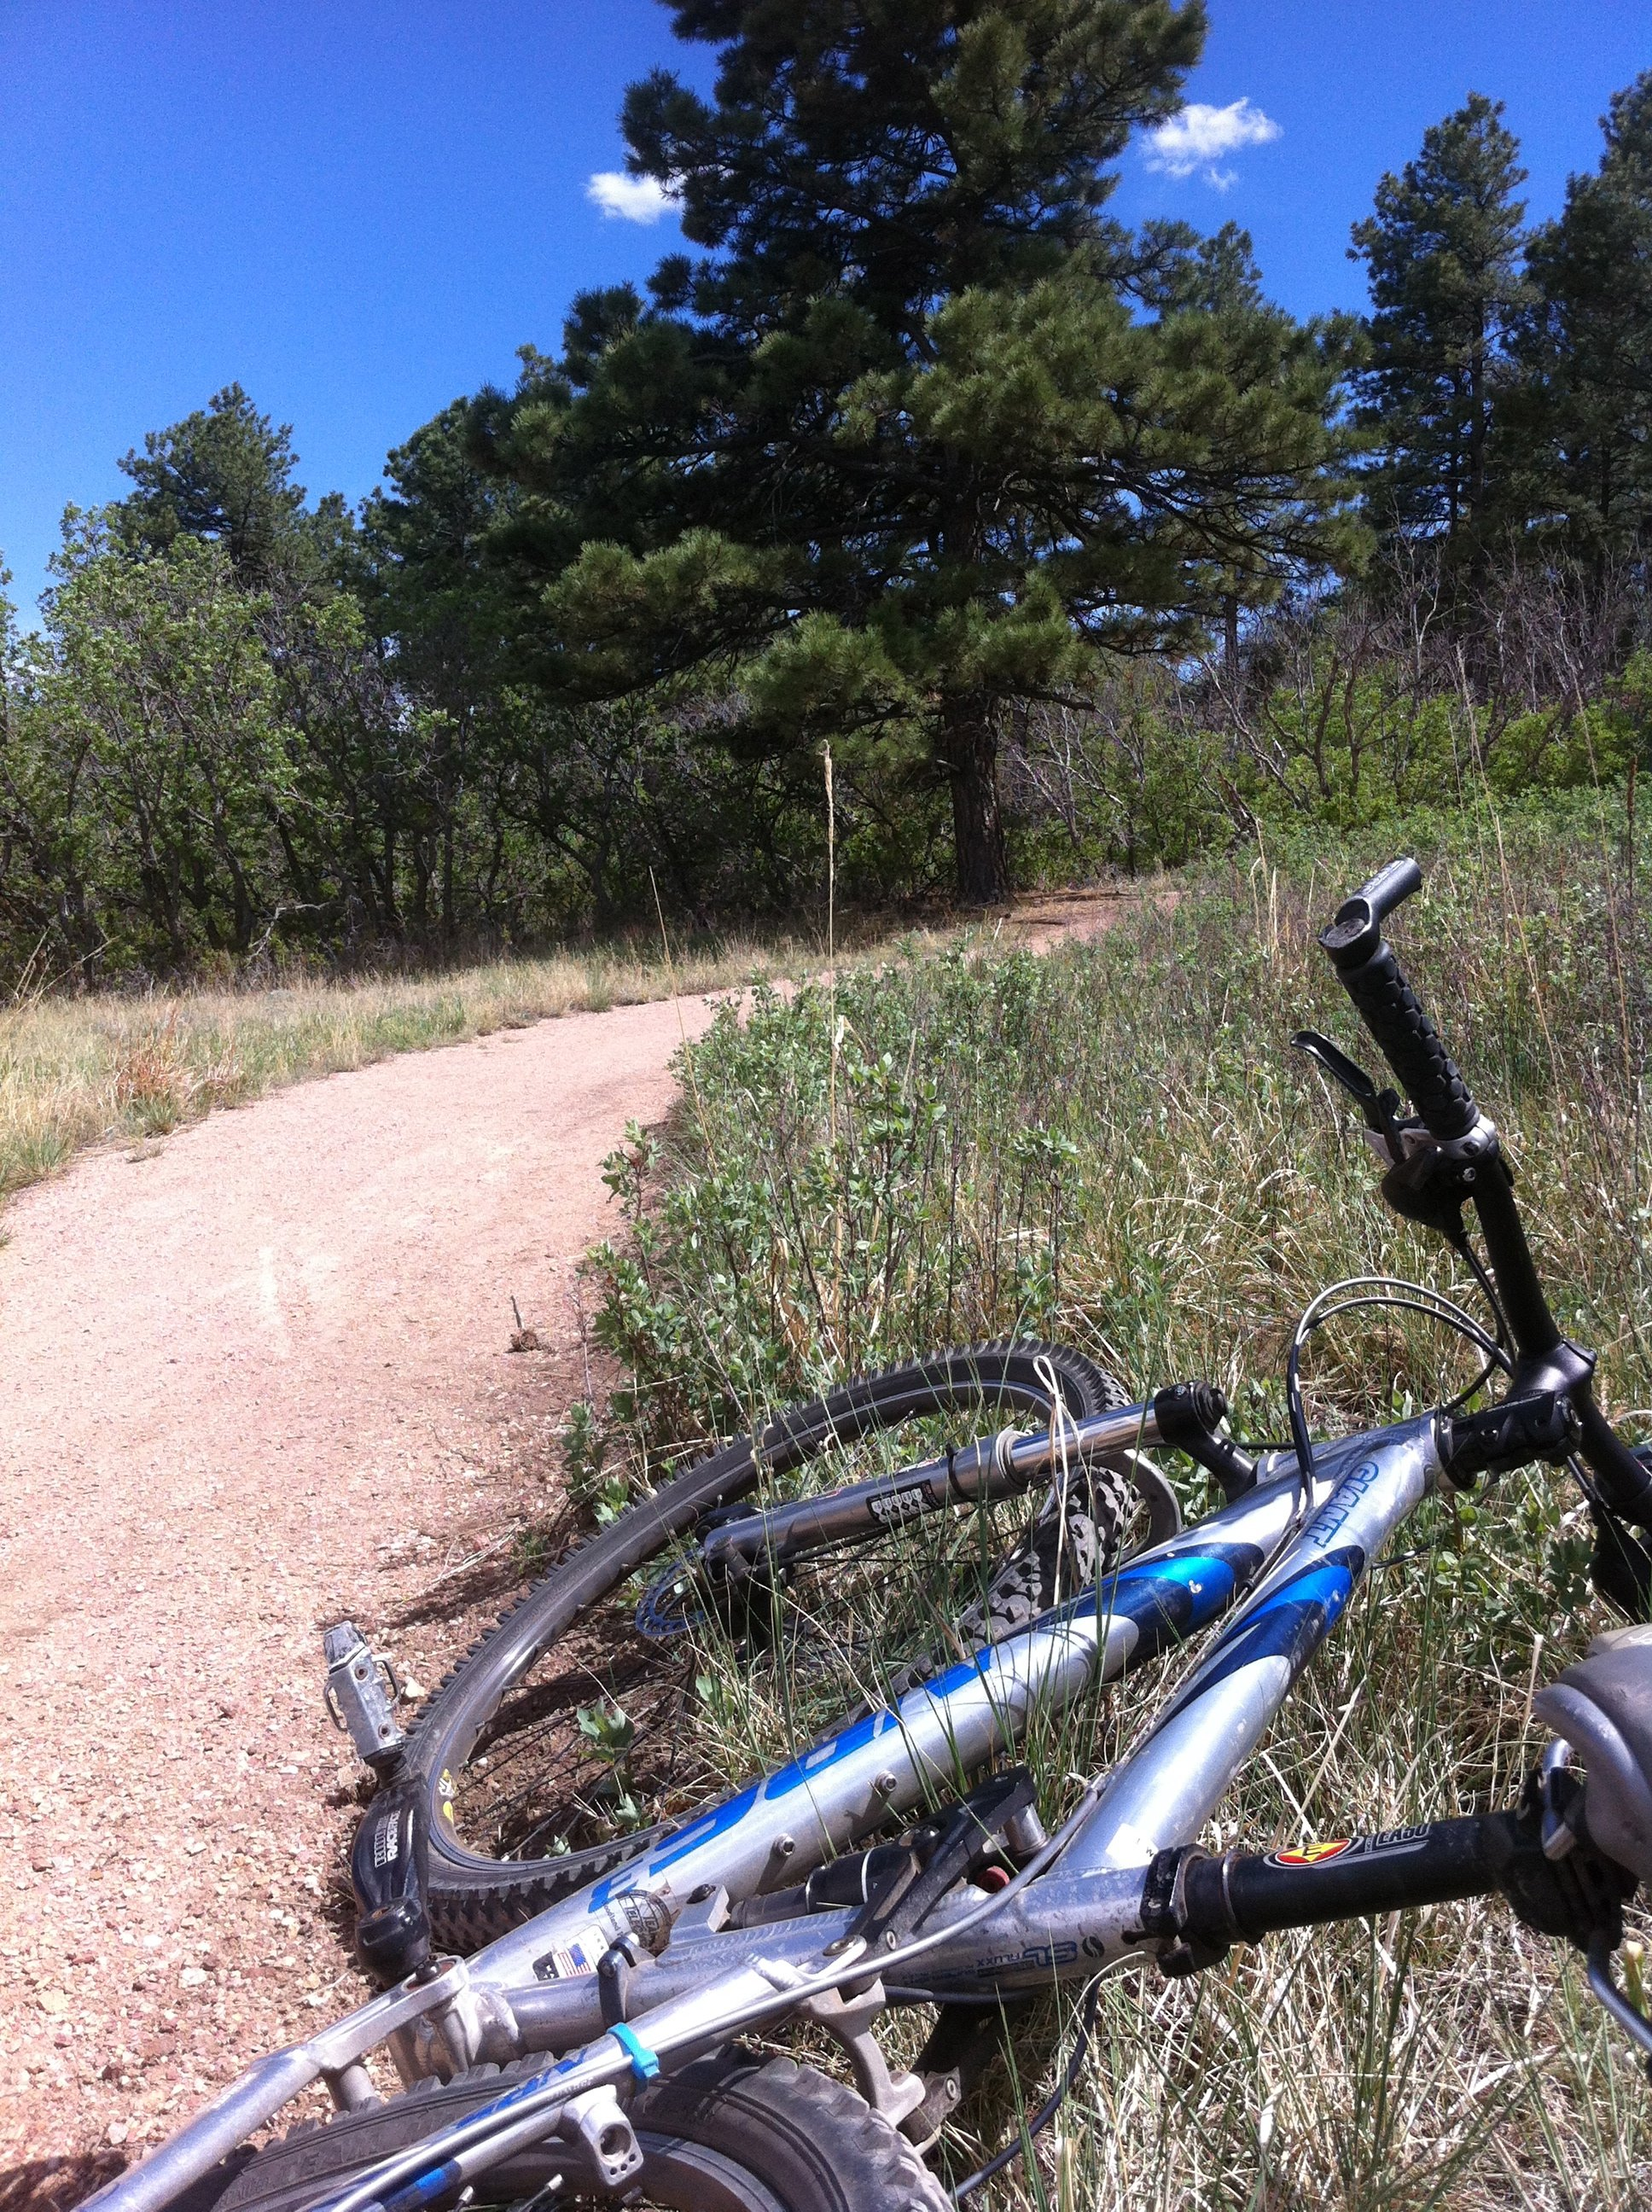 Bike laying next to trail in Cheyenne Mountain State Park